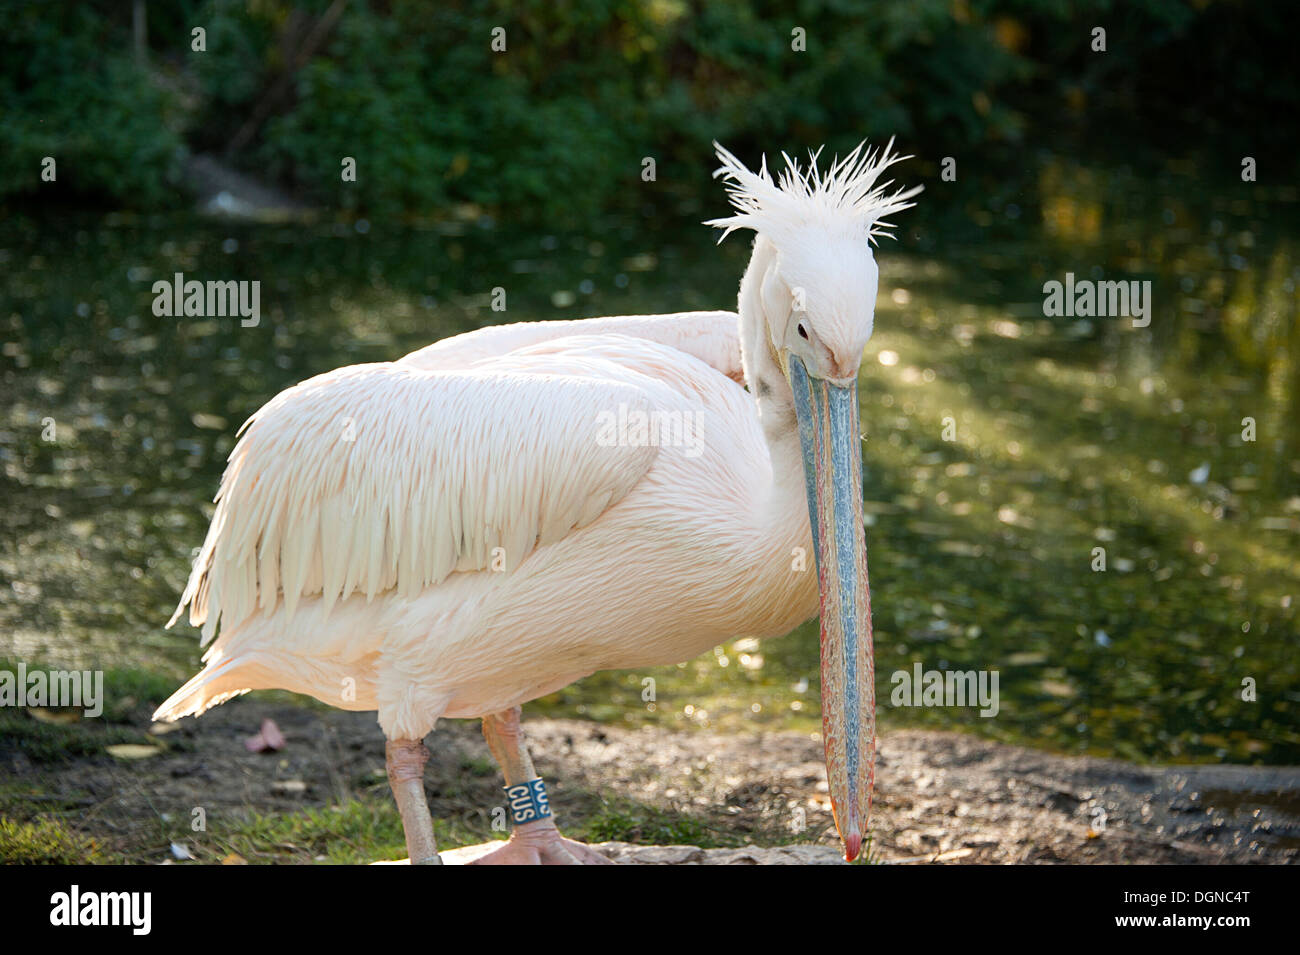 Elegant Great White Pelican at London Zoo. Stock Photo